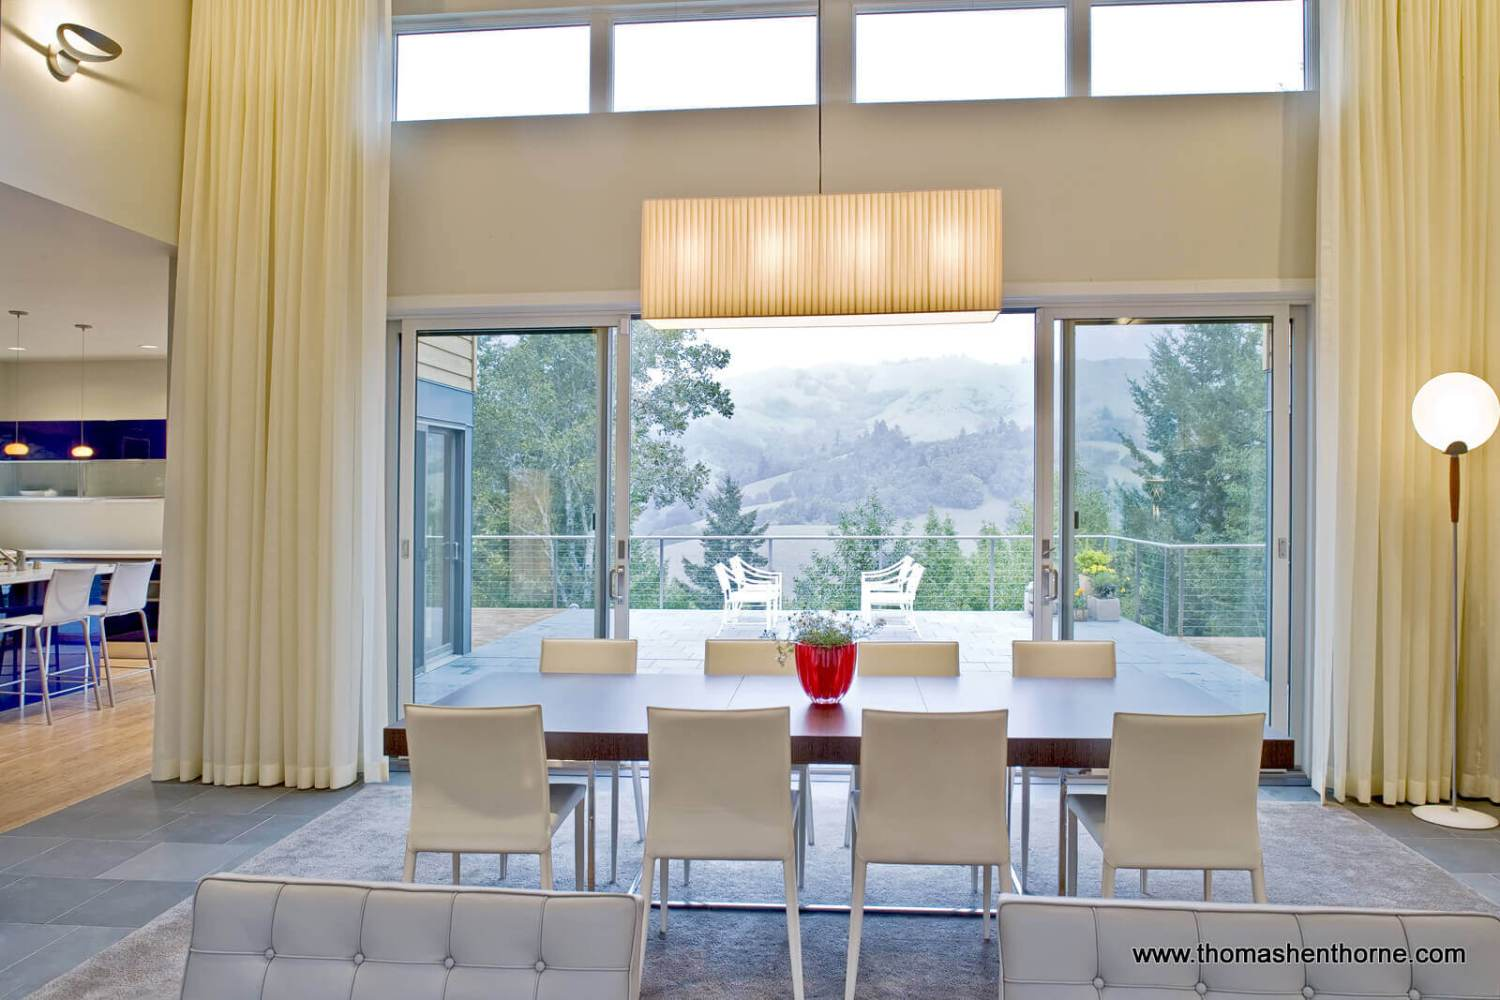 Dining area opens onto patio with gorgeous view